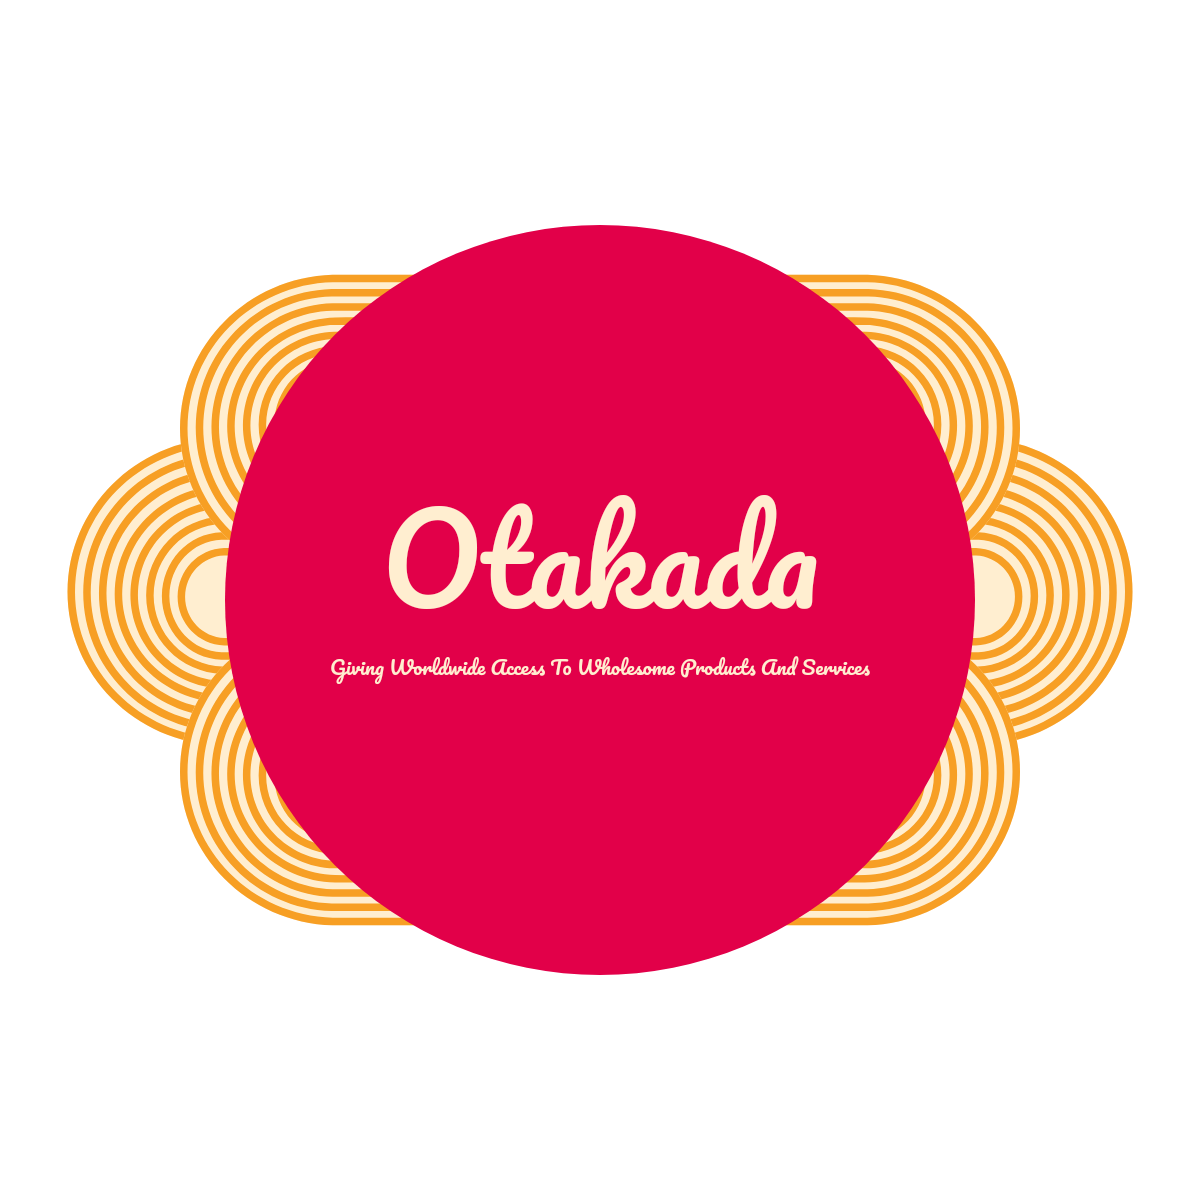 Otakada.org Logo - Bringing you over 2 million wholesome products and services all in on place for the christian community and online seekers